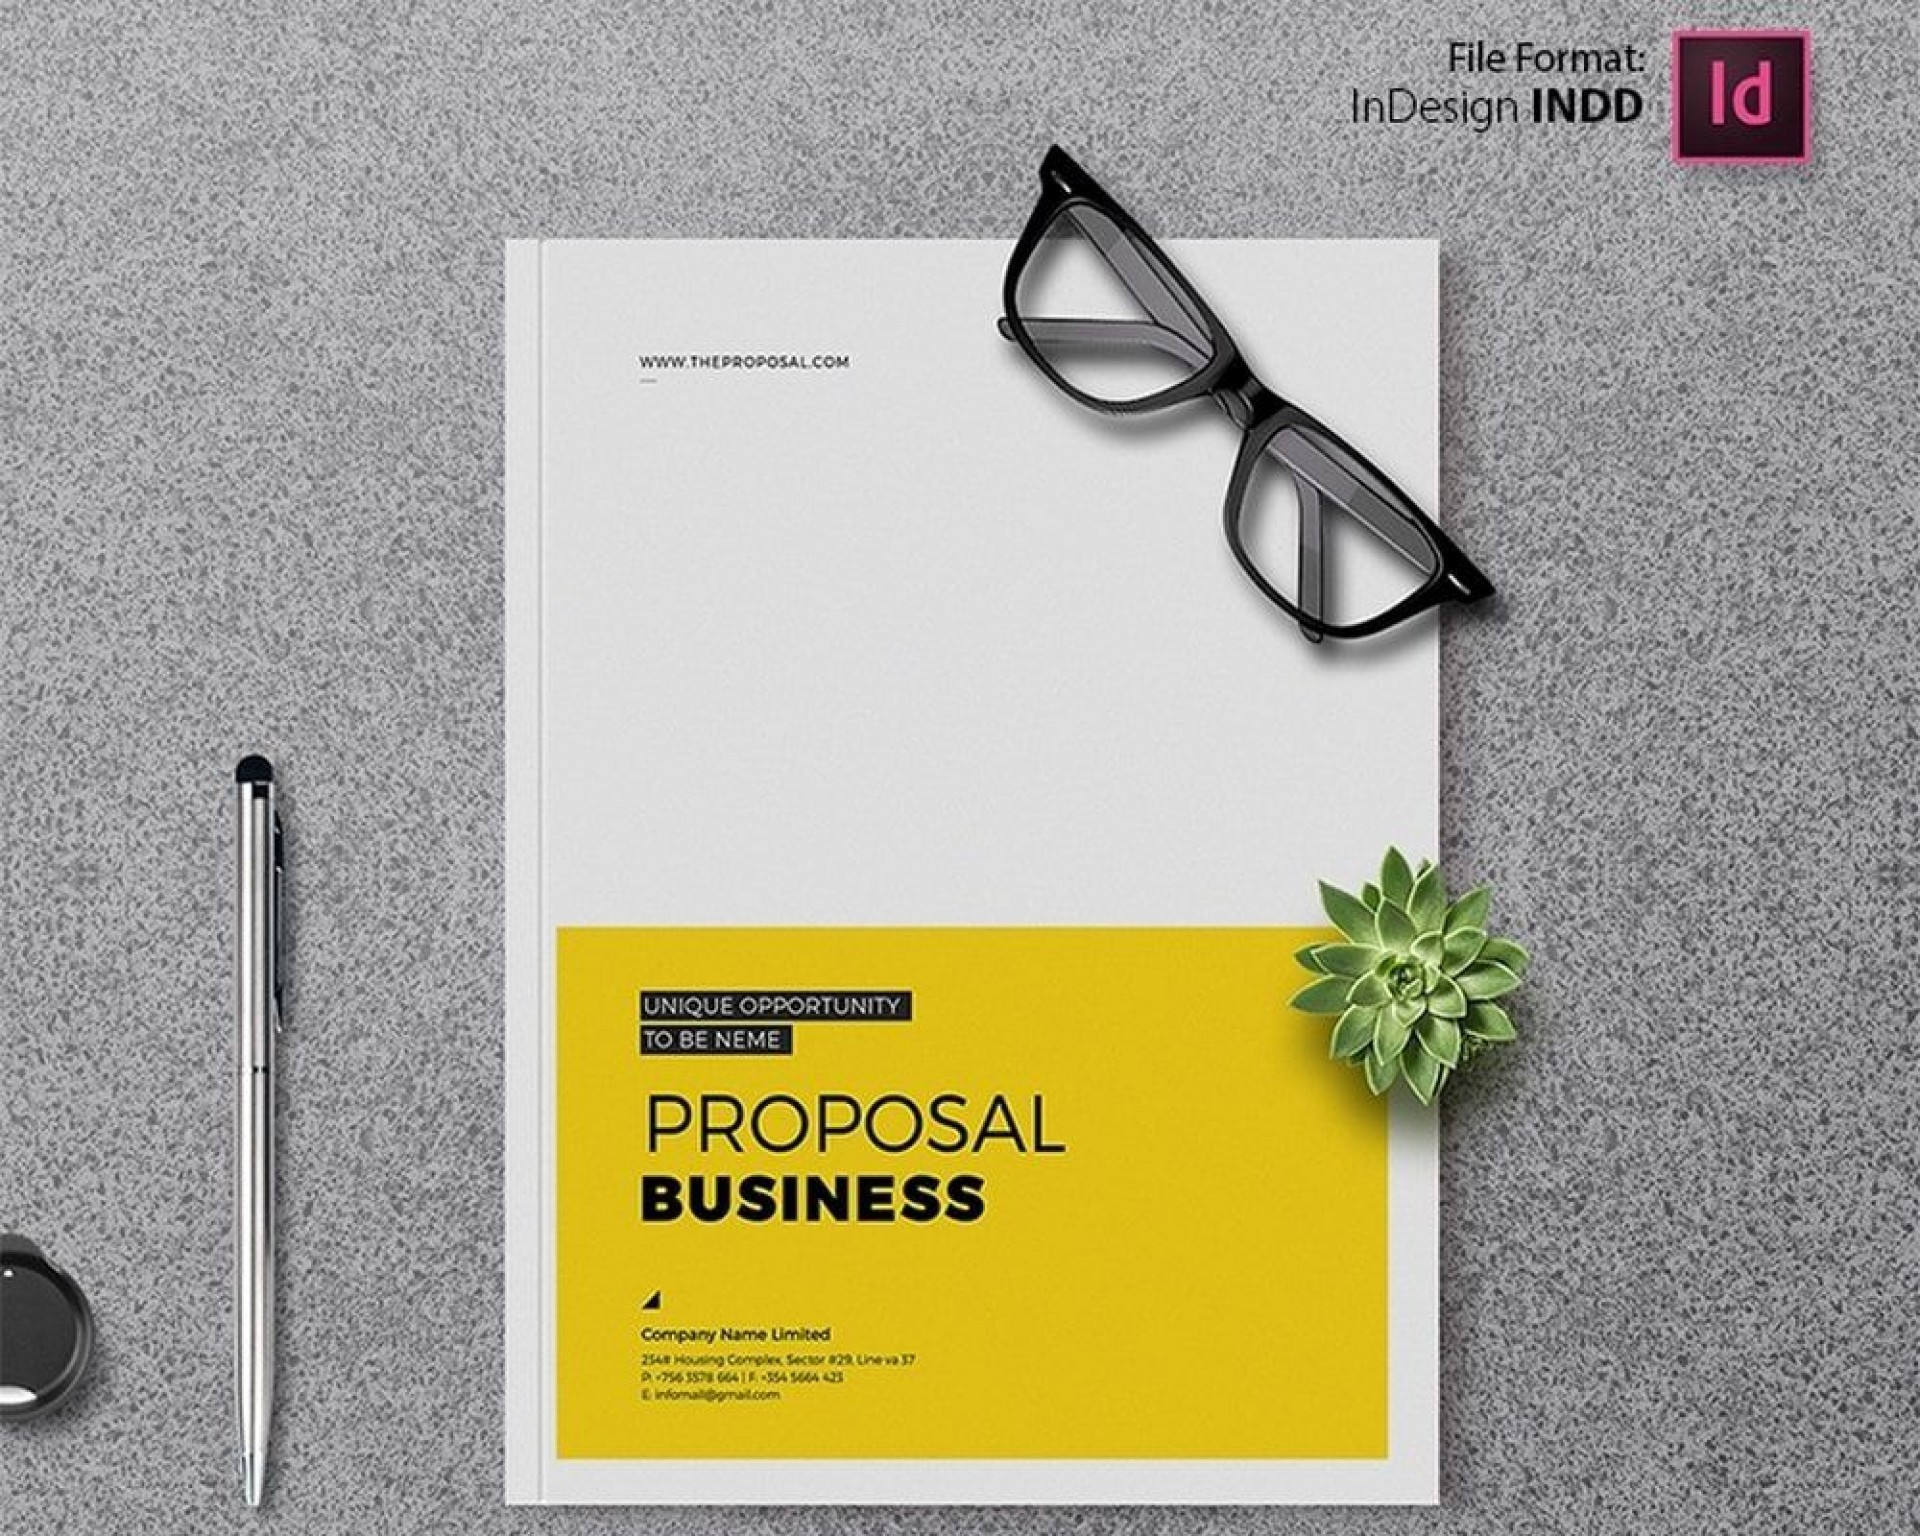 005 Marvelou Free Online Brochure Template For Word Image  Microsoft1920